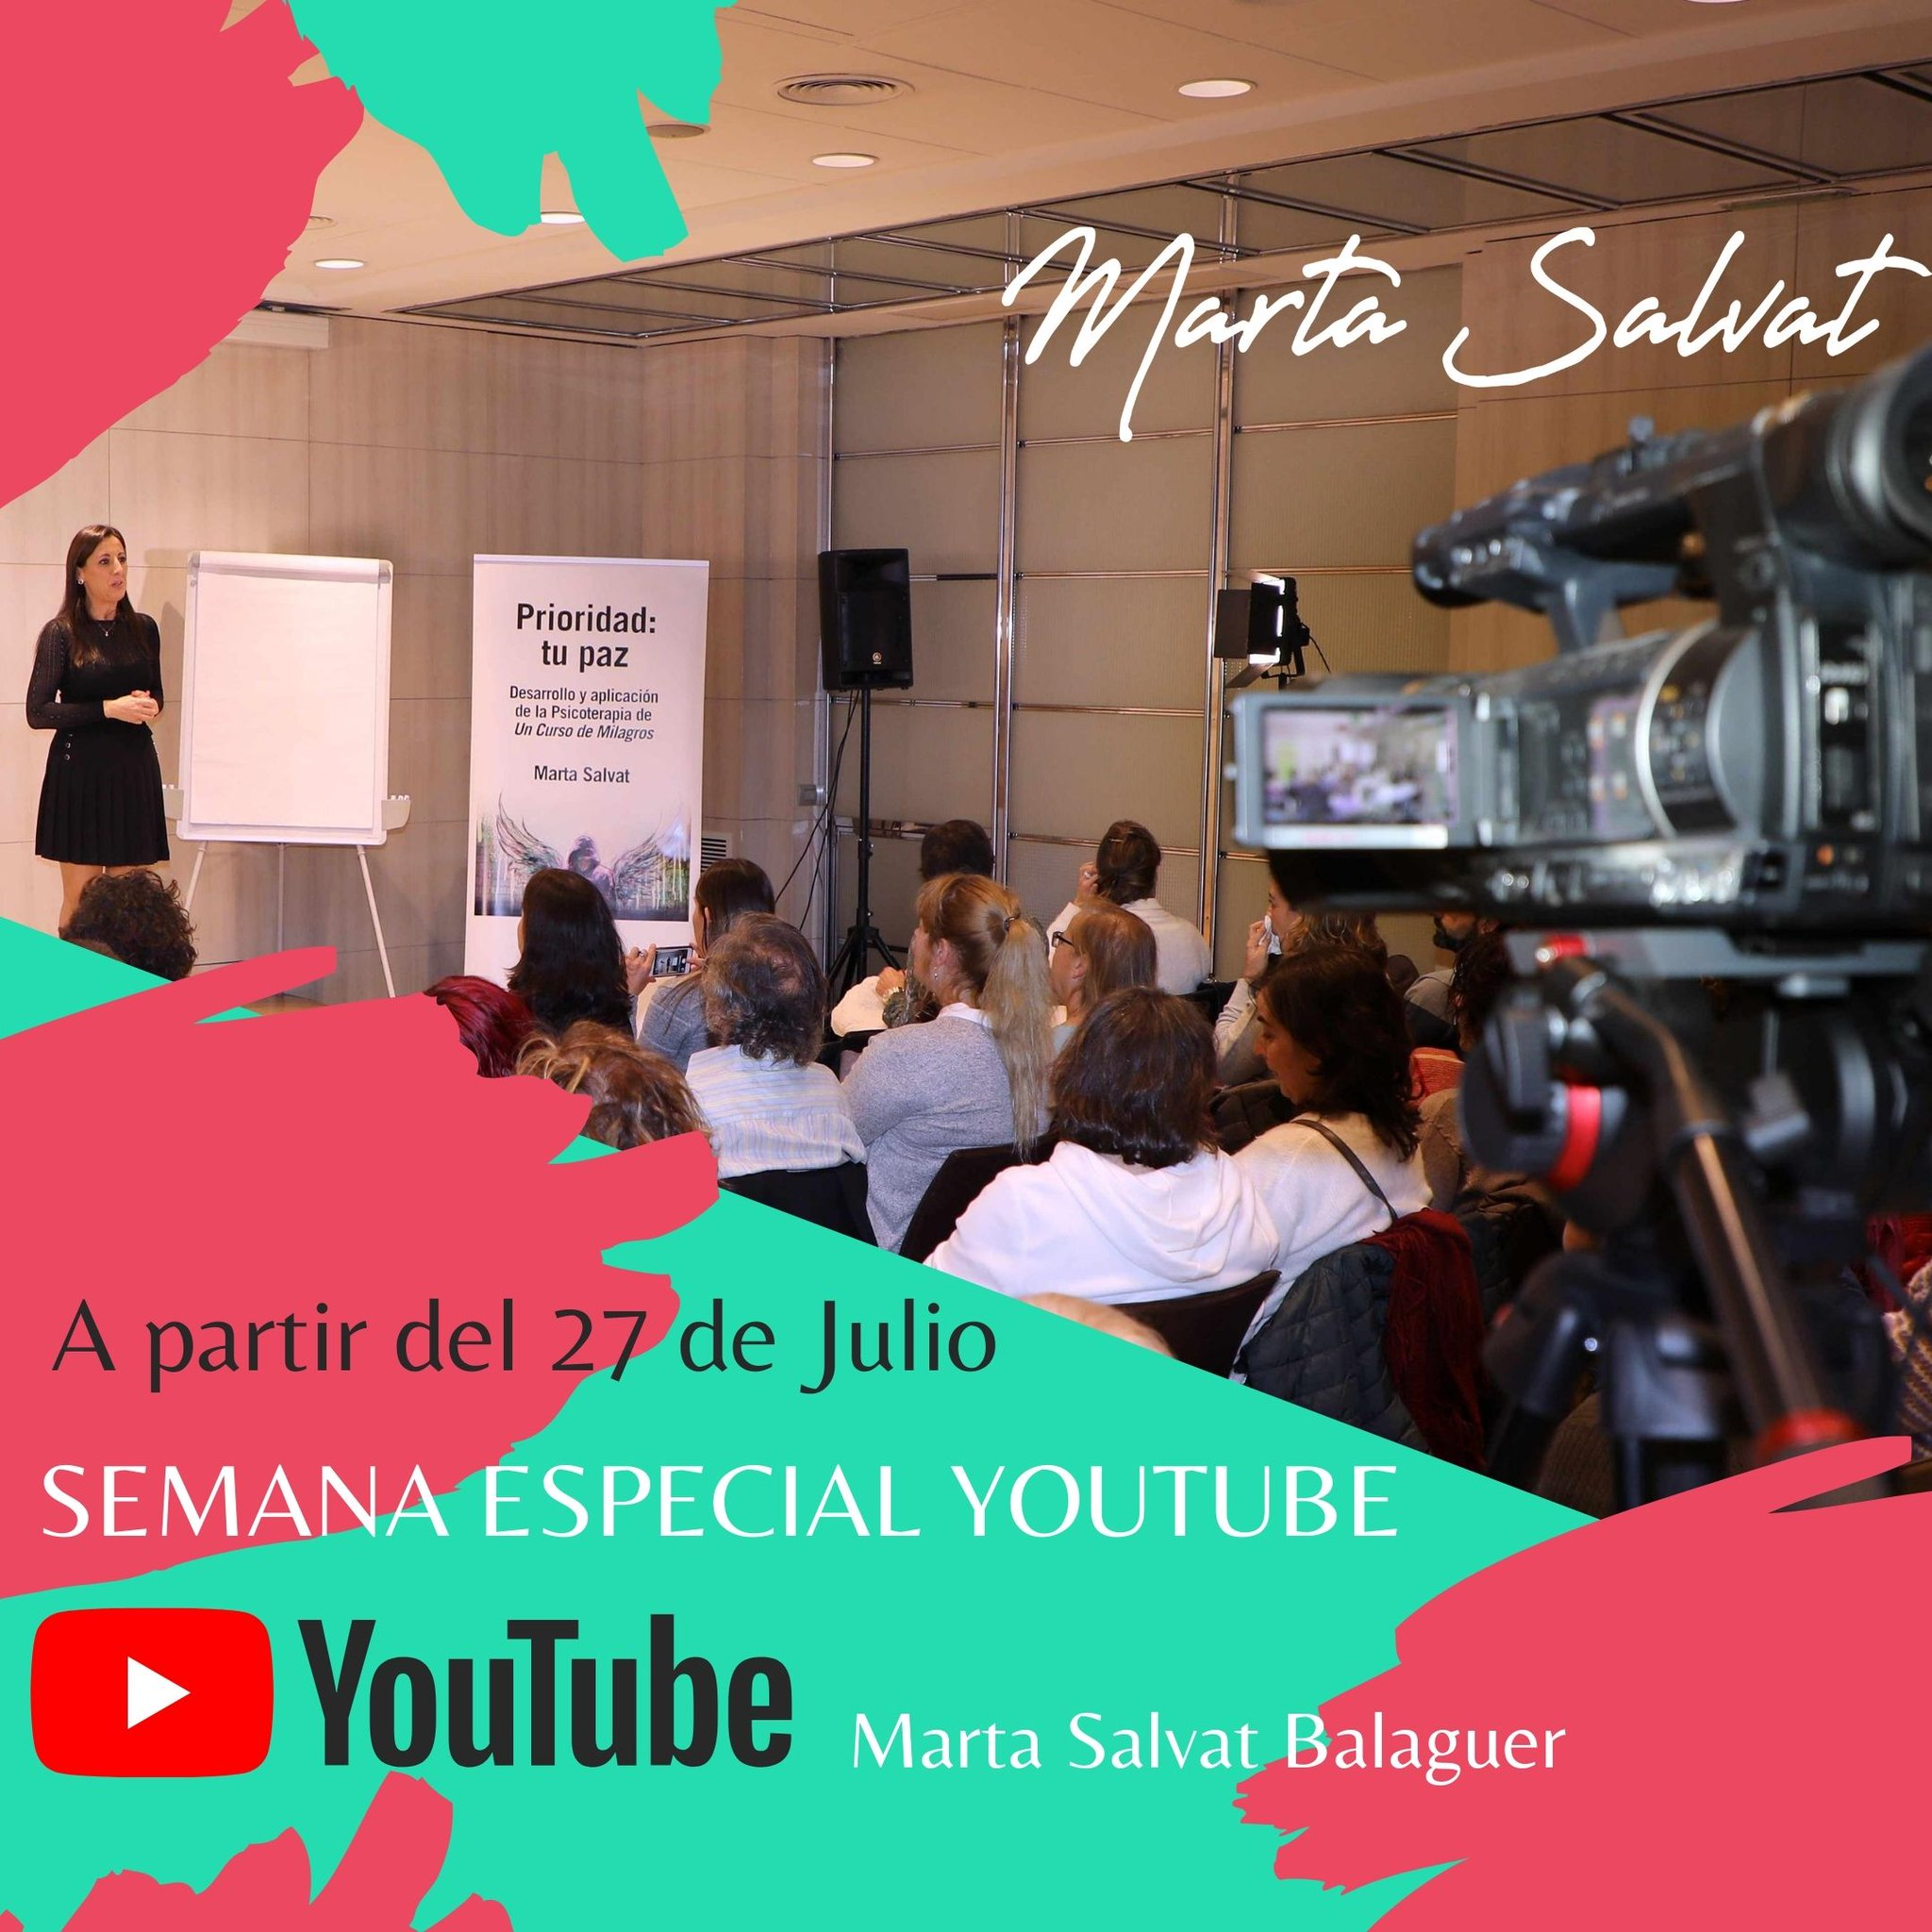 Marta Salvat On Twitter Sorpresa Semana Del 27 De Julio Semana Especial Youtube Un Nuevo Vídeo Cada Día Suscríbete Ya Al Canal De Youtube De Marta Salvat Https T Co Mfjyry0hgi Martasalvat Youtube Video